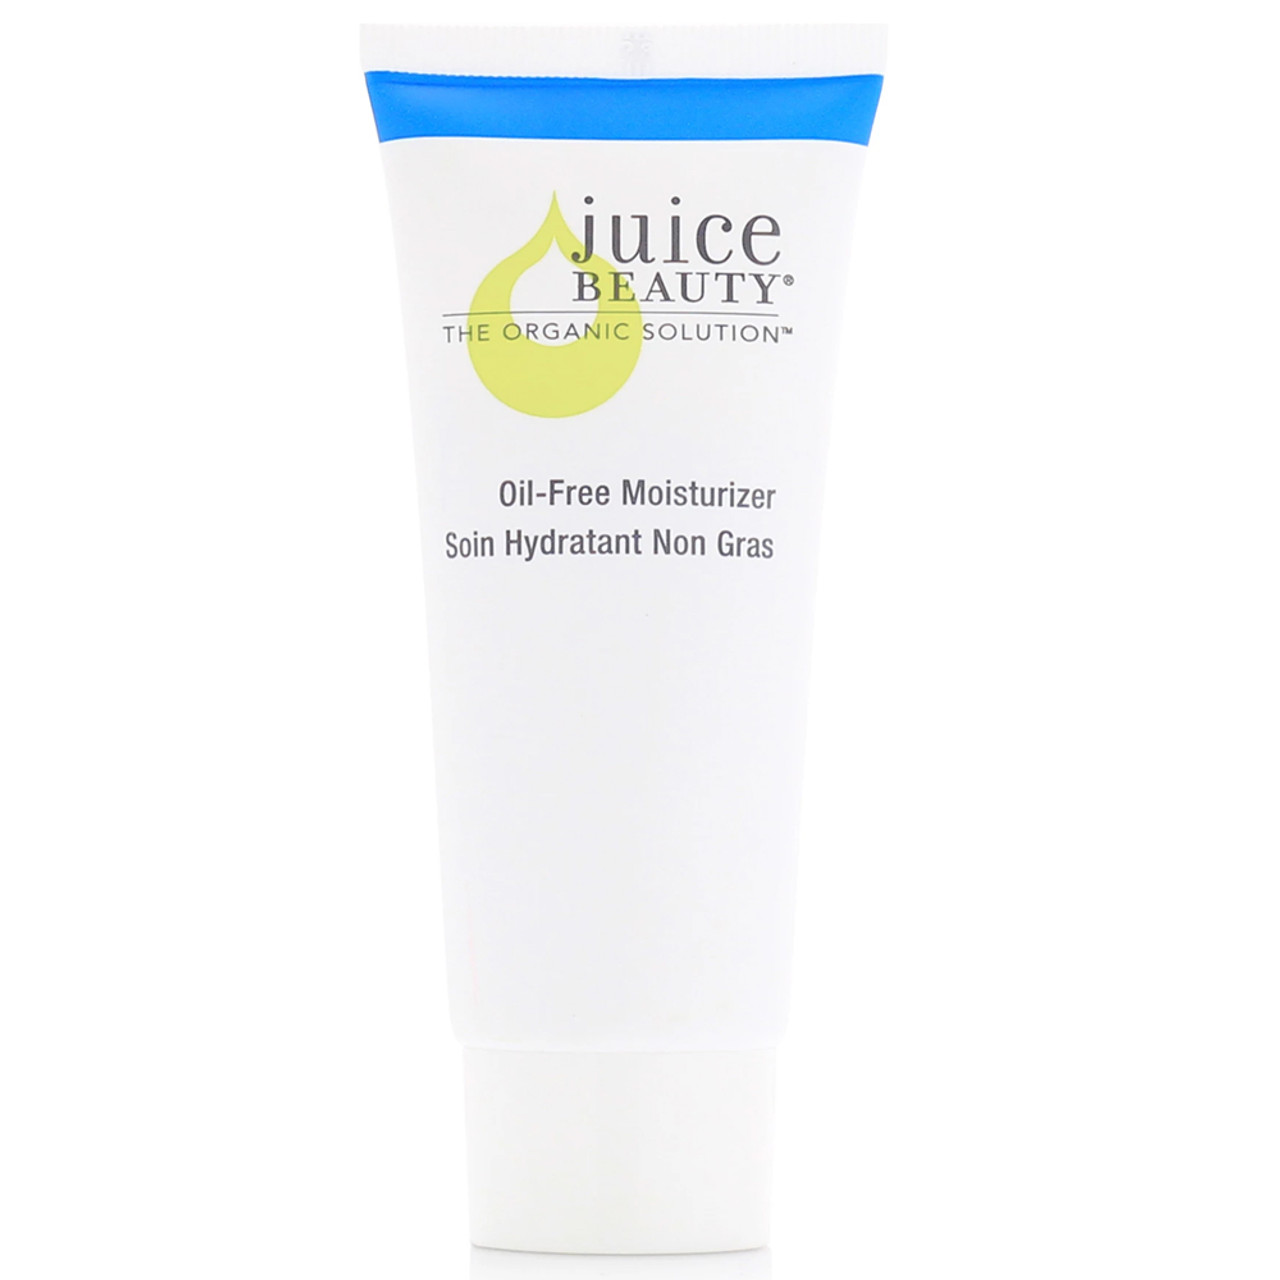 Juice Beauty Blemish Clearing Oil-Free Moisturizer